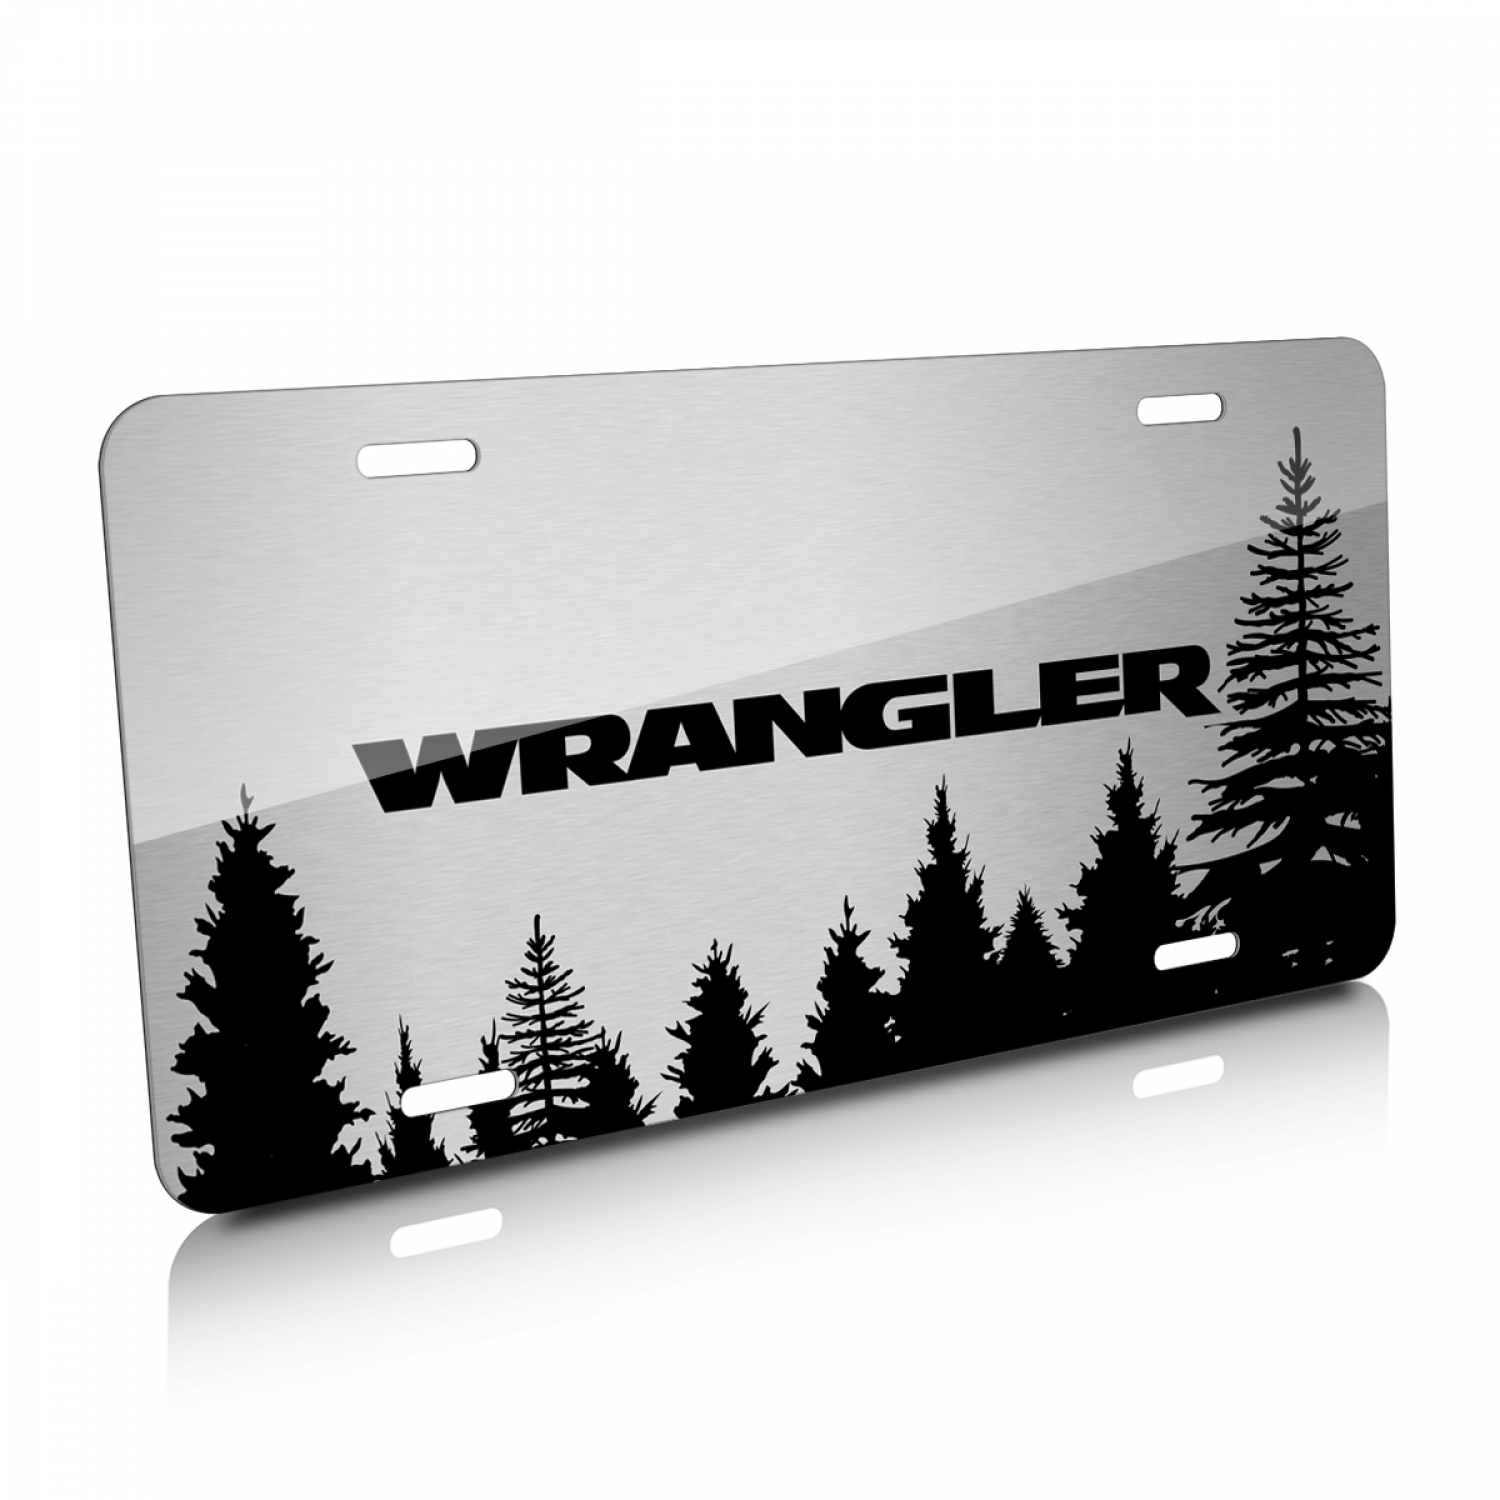 Jeep Wrangler Forrest Sillhouette Graphic Brush Aluminum License Plate